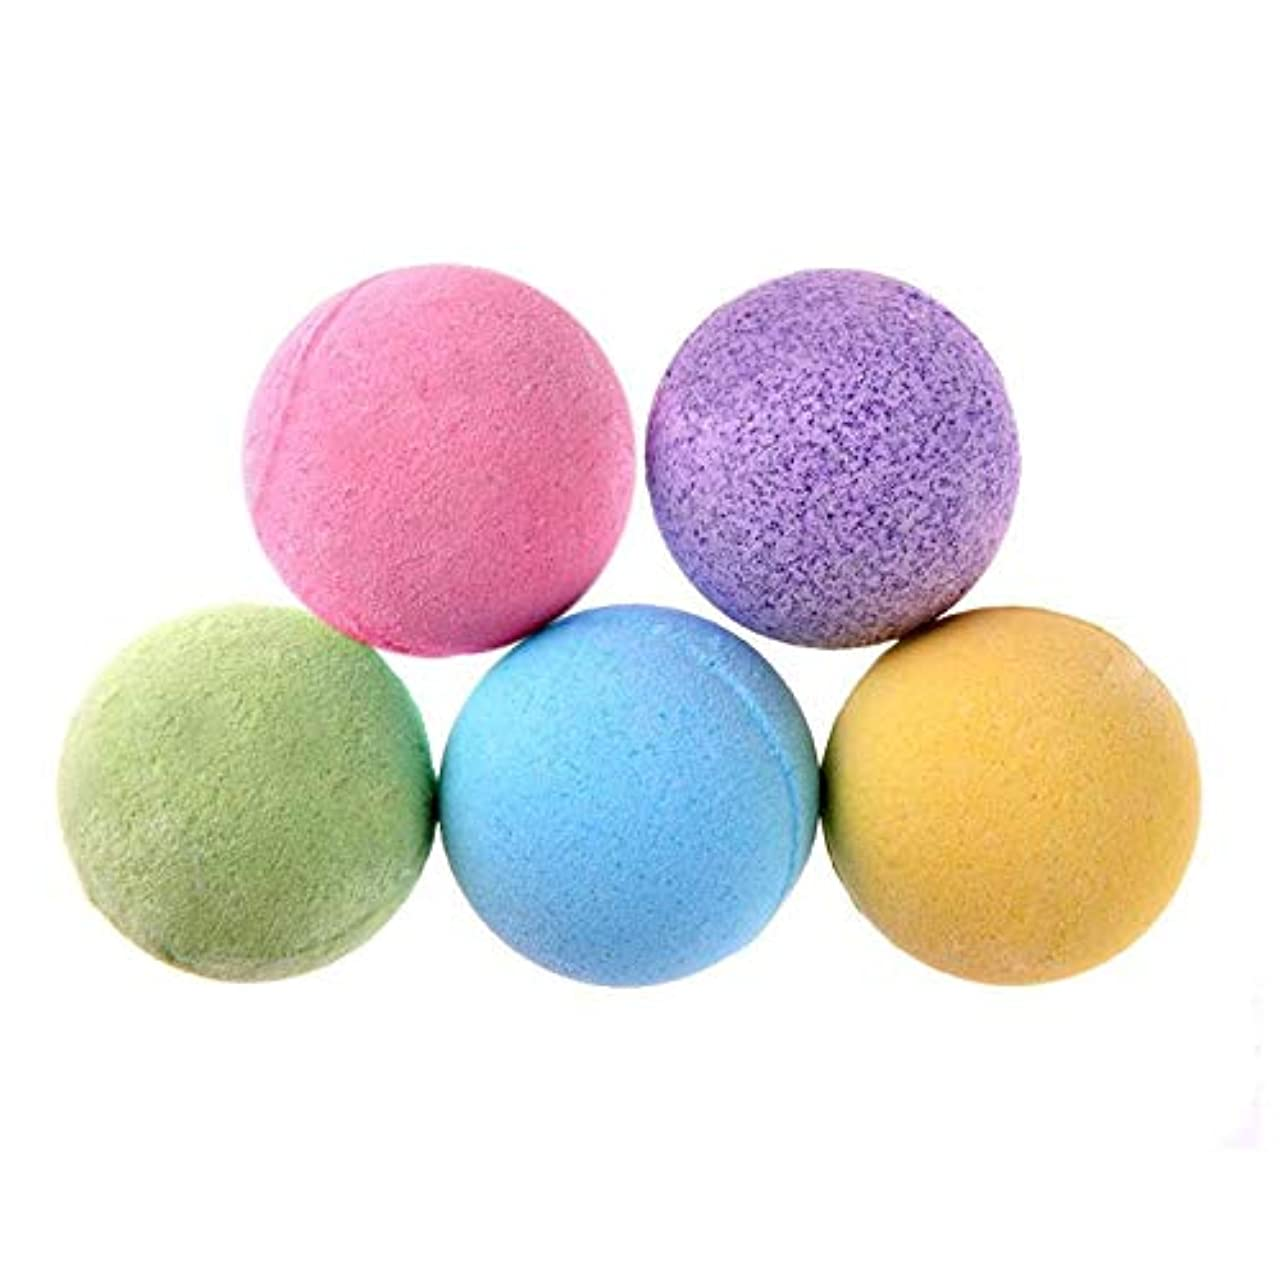 Hot 10pc 10g Organic Bath Salt Body Essential Oil Bath Ball Natural Bubble Bath Bombs Ball Rose/Green tea/Lavender...